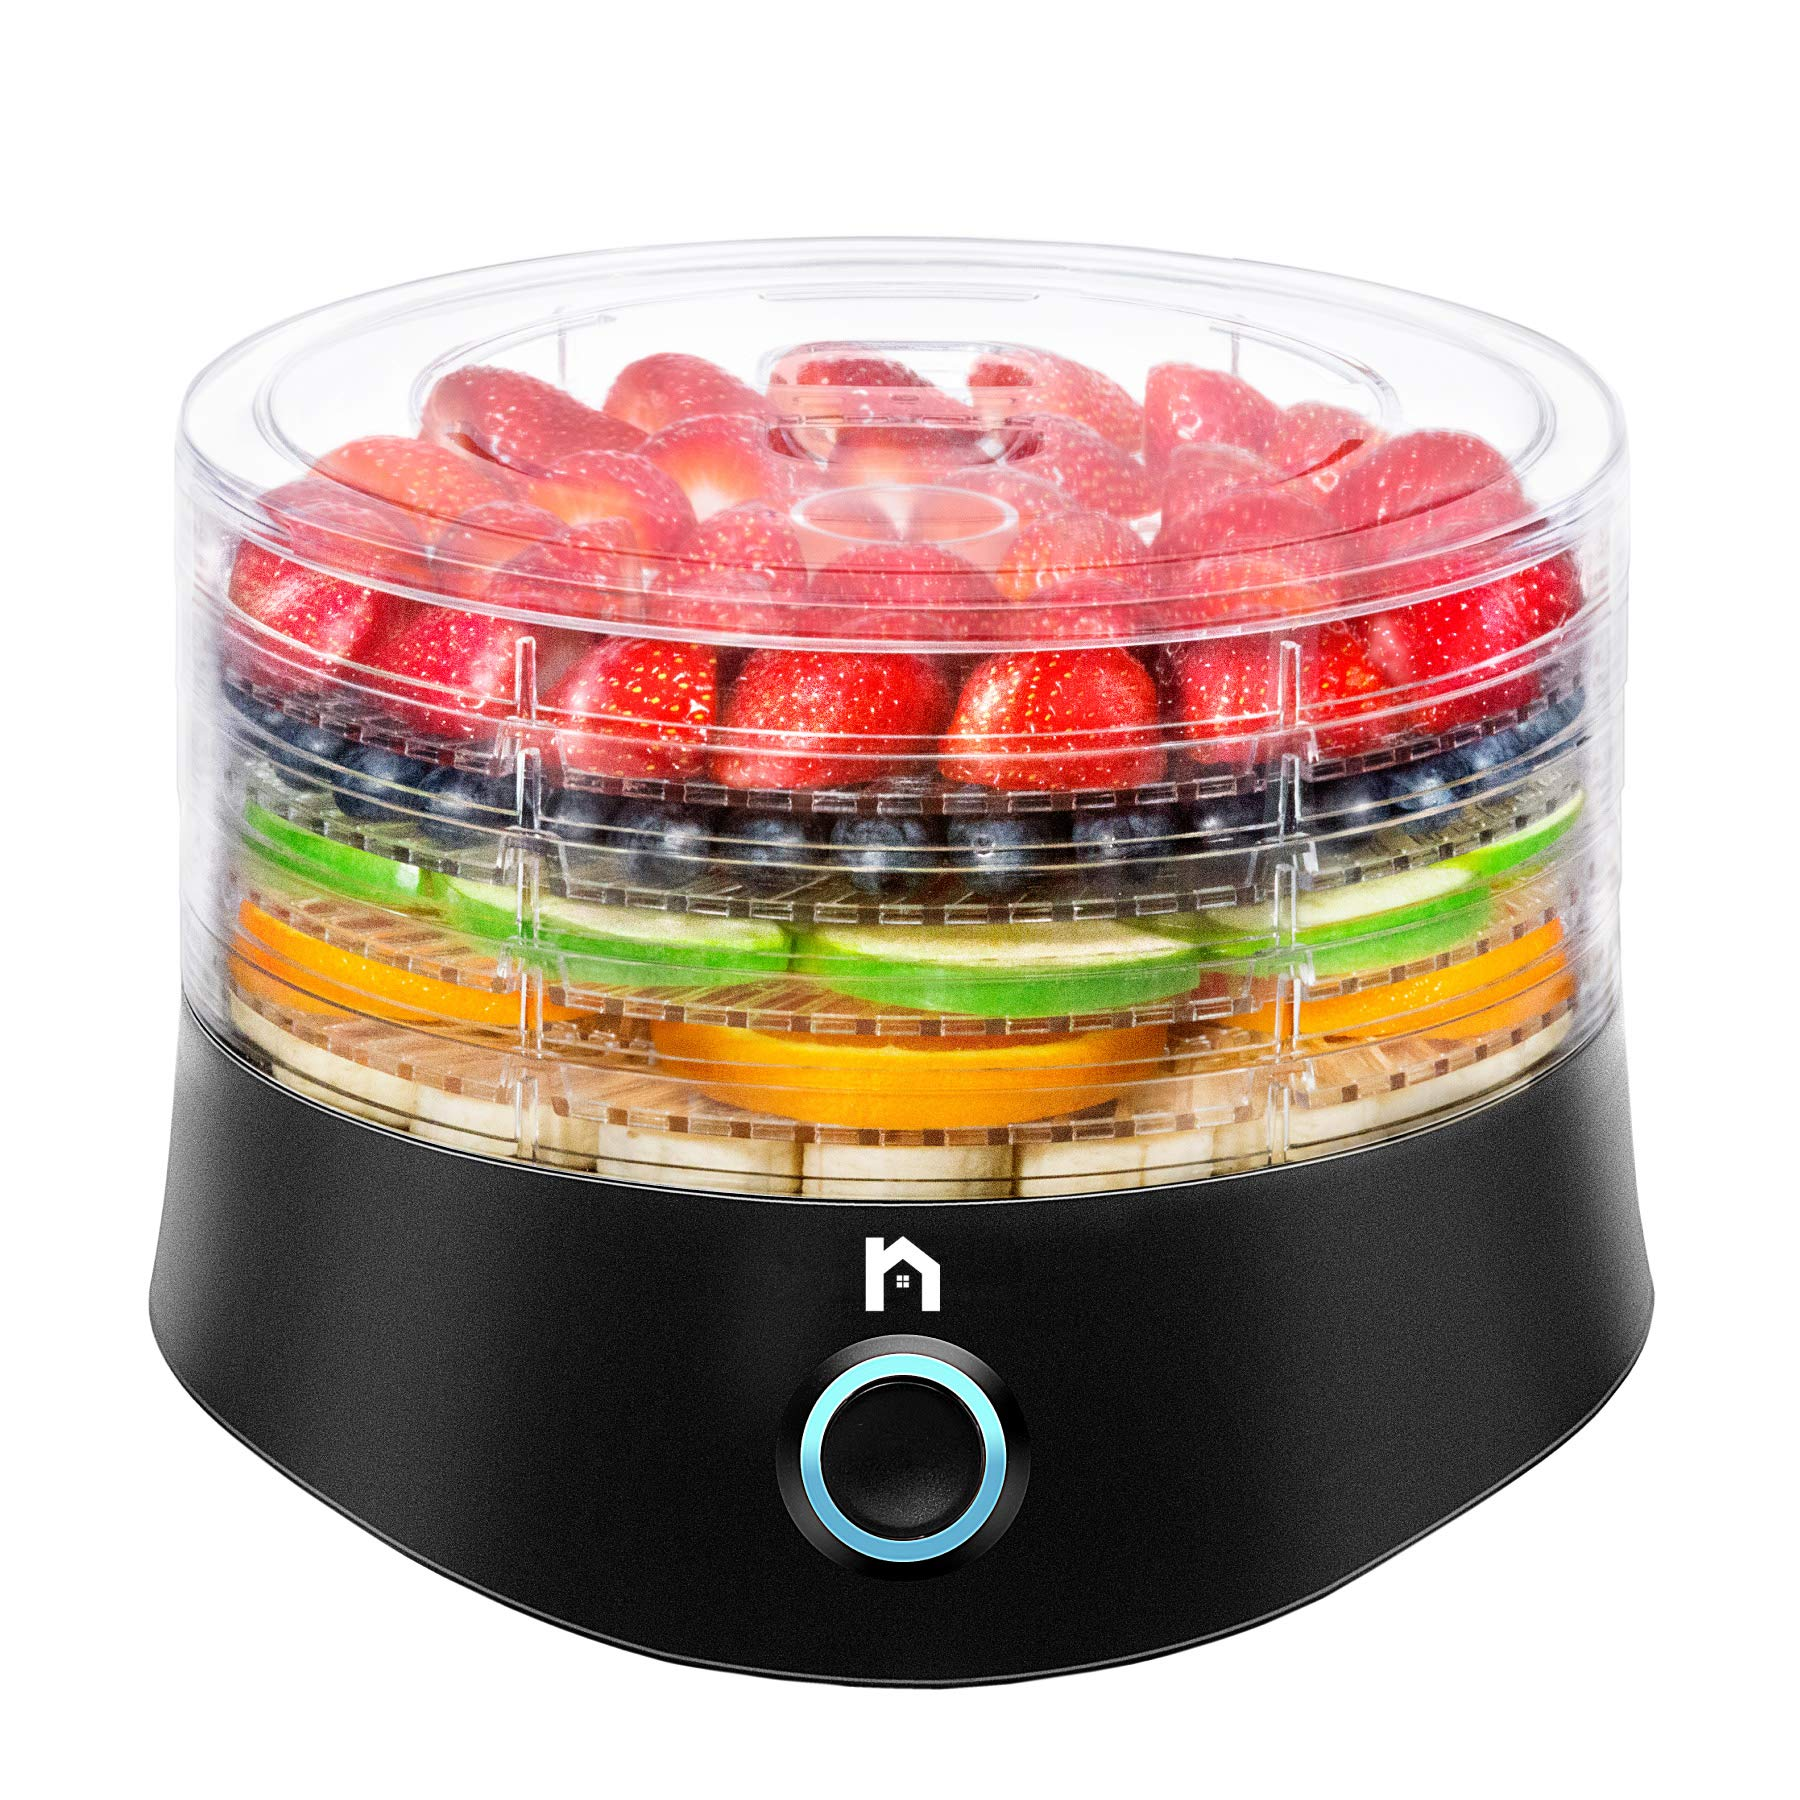 New House Kitchen 5 Round Dehydrator BPA-Free Stackable Transparent Trays Electric Professional Multi-Tier Food Preserver, Beef Jerky Maker, Fruit & Vegetable Dryer, Compact, Black